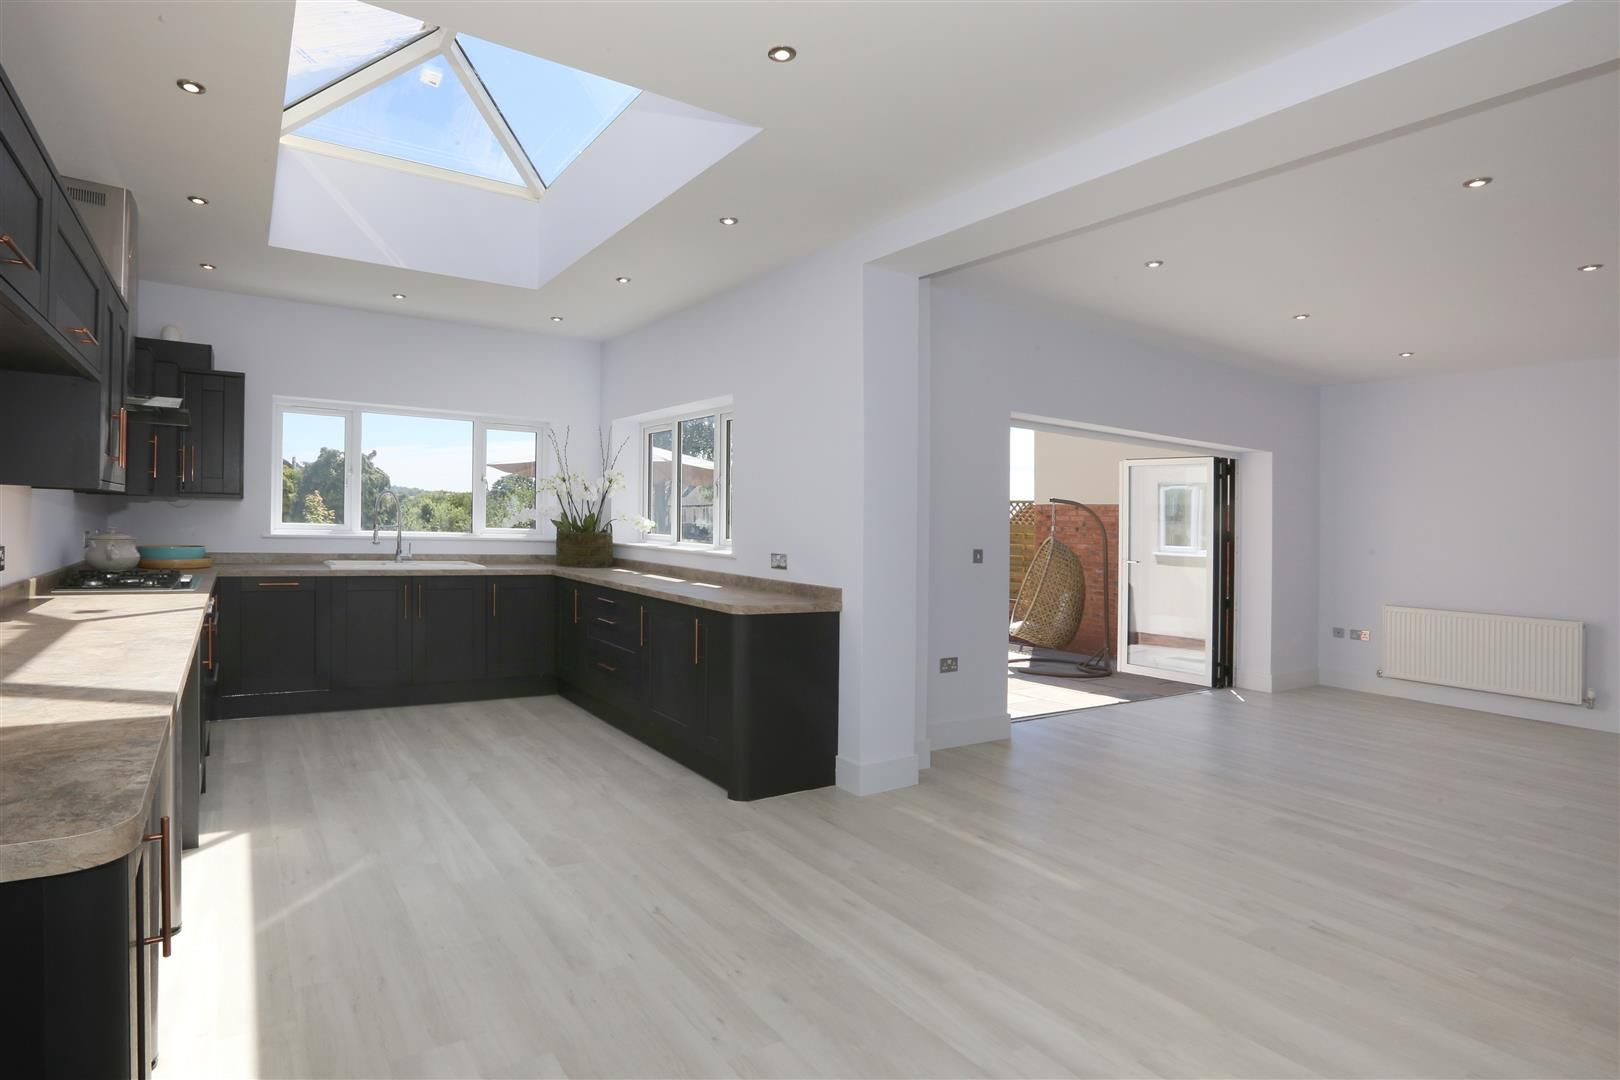 4 bed detached for sale in Hagley 2